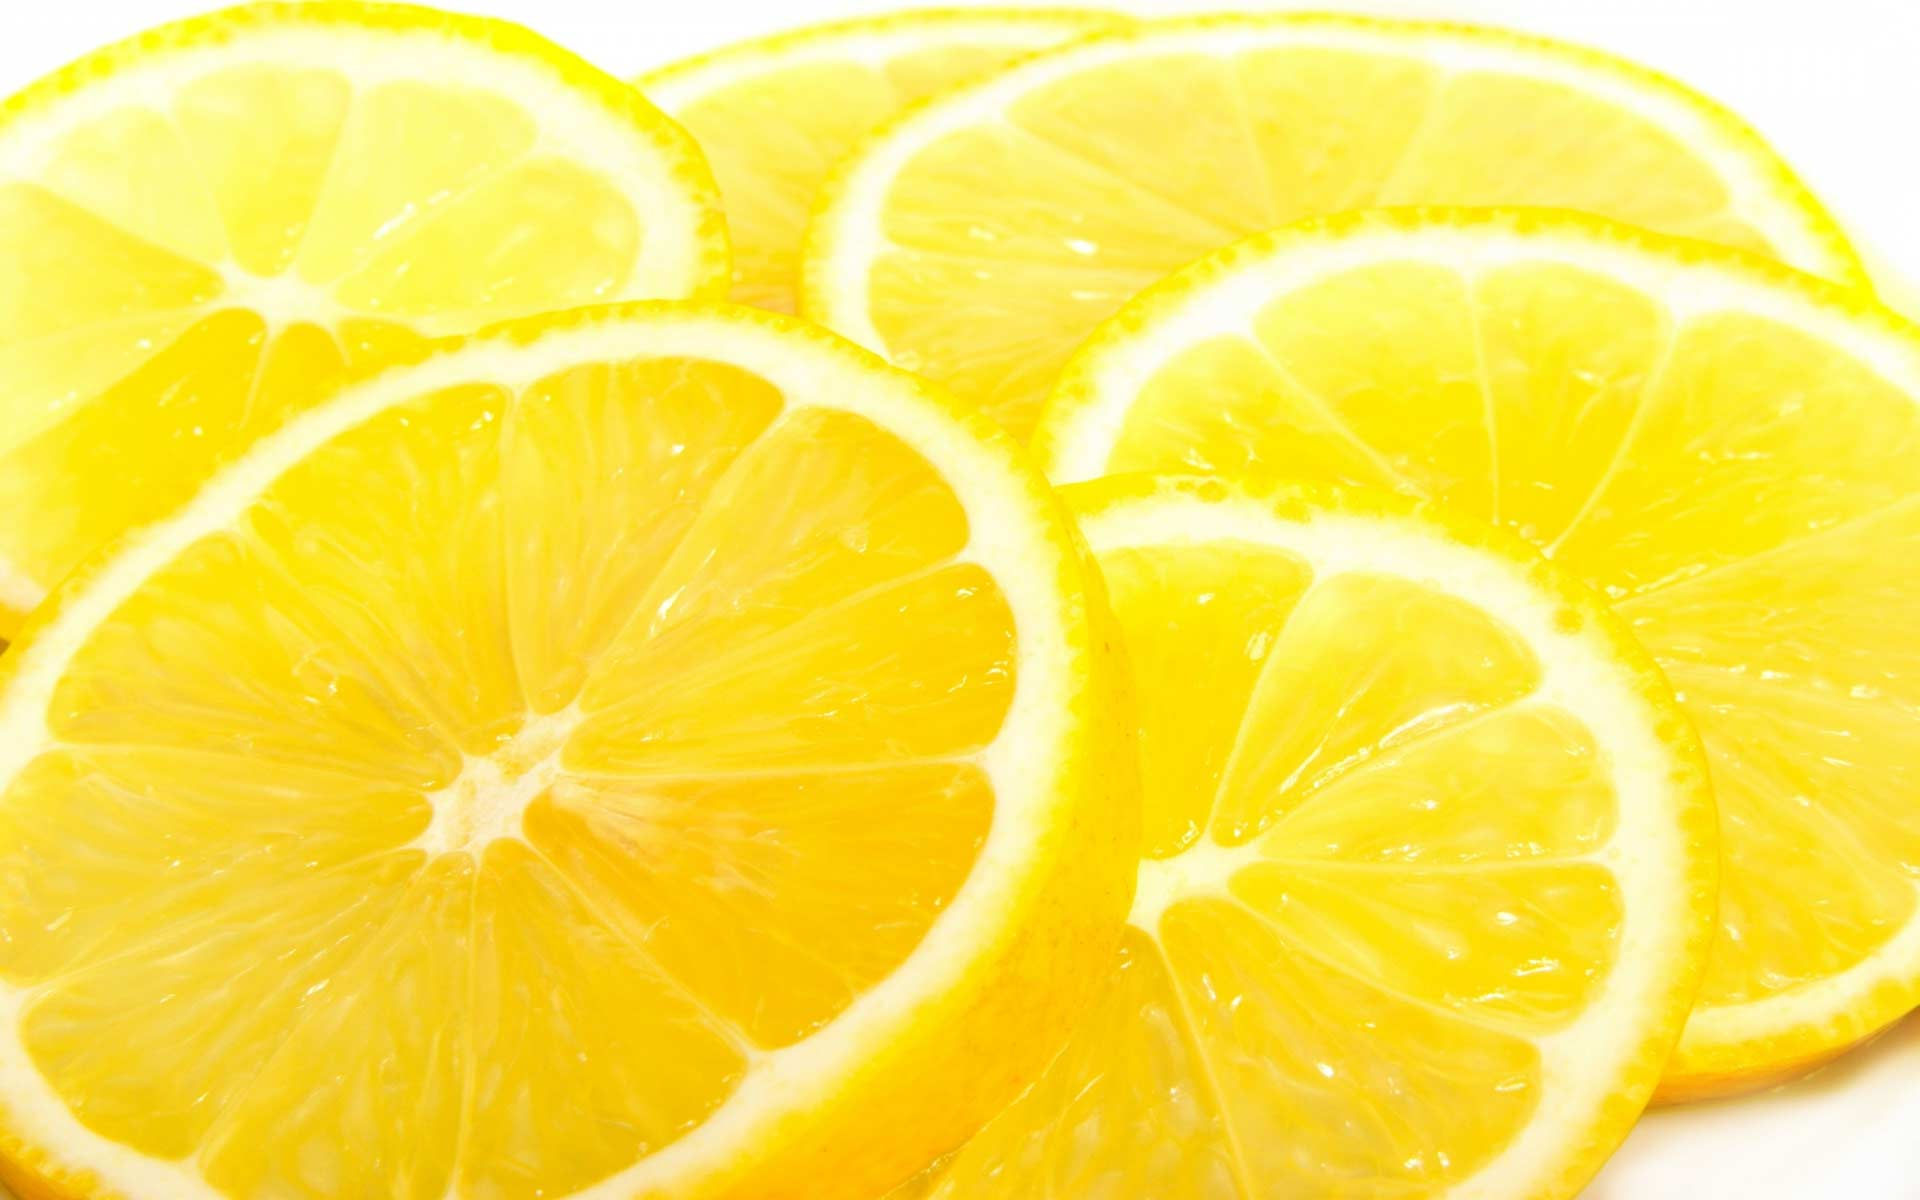 Lemon Wallpapers - Wallpaper Cave